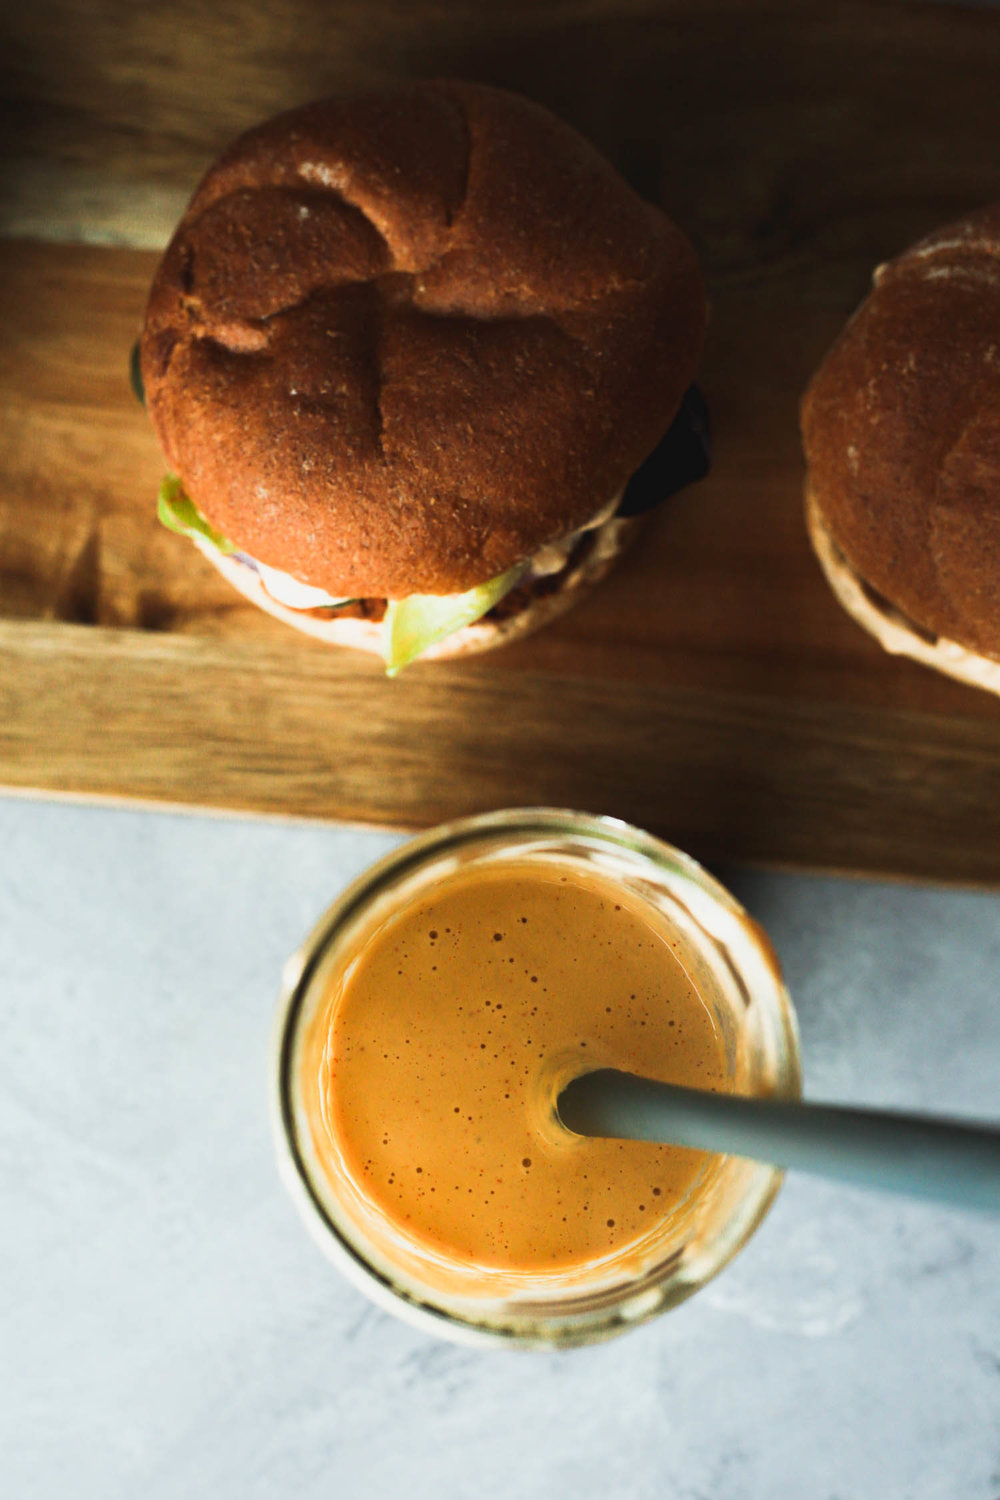 smoky Tangy Cream ready for burgers | Recipe by Sophia DeSantis, Photo by Kari of Beautiful Ingredient.